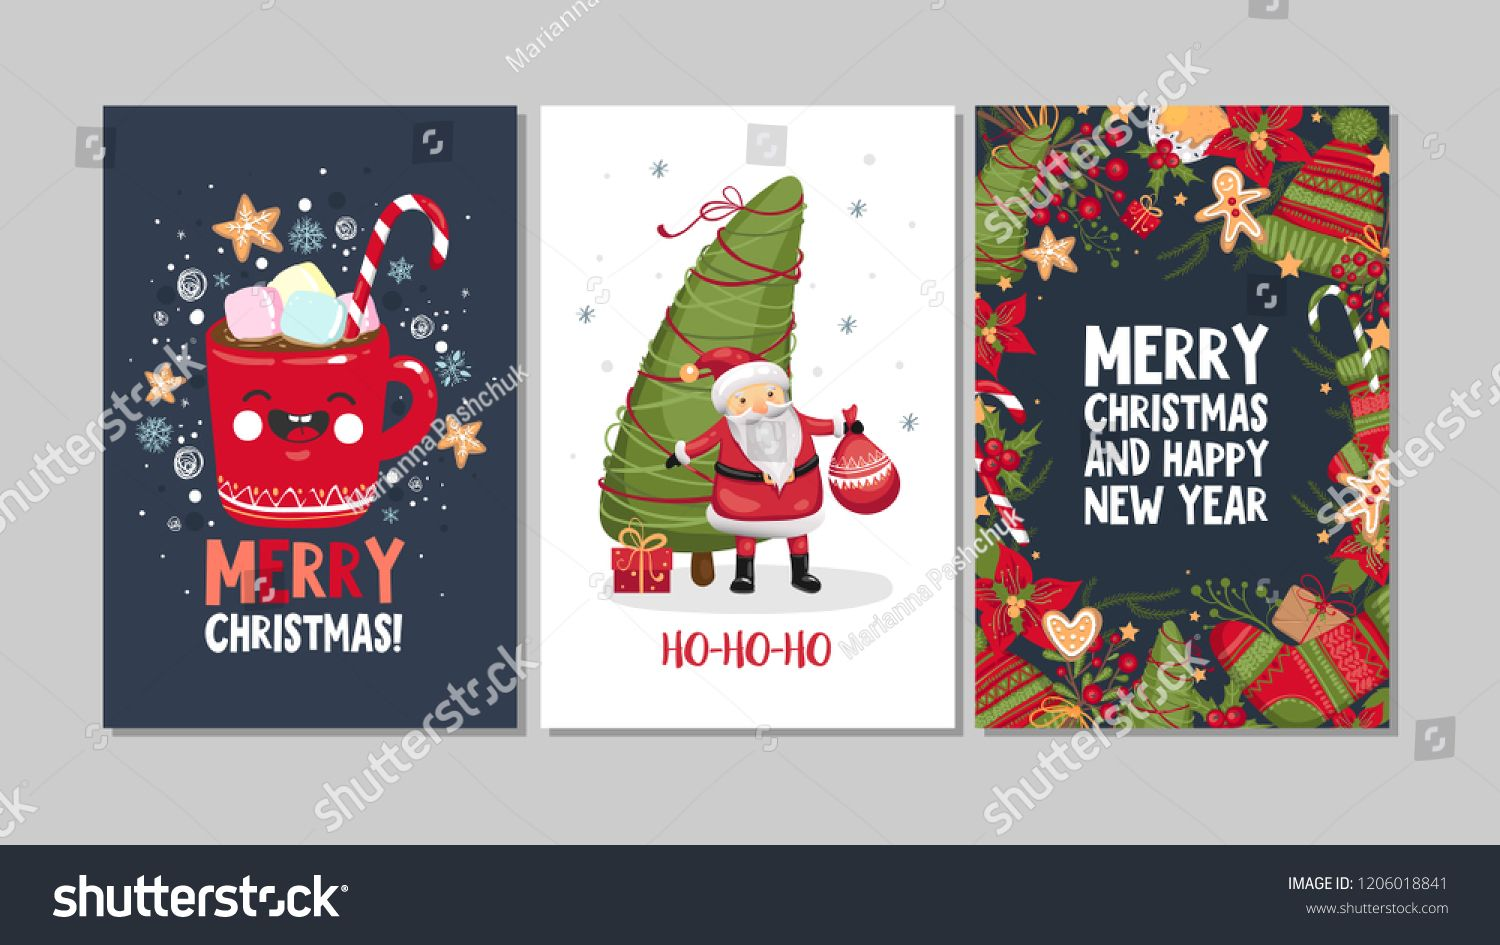 Collection Of Cute Merry Christmas And Happy New Year Greeting Cards Set Of Hand Drawn H Merry Christmas Poster New Year Greeting Cards Christmas Illustration